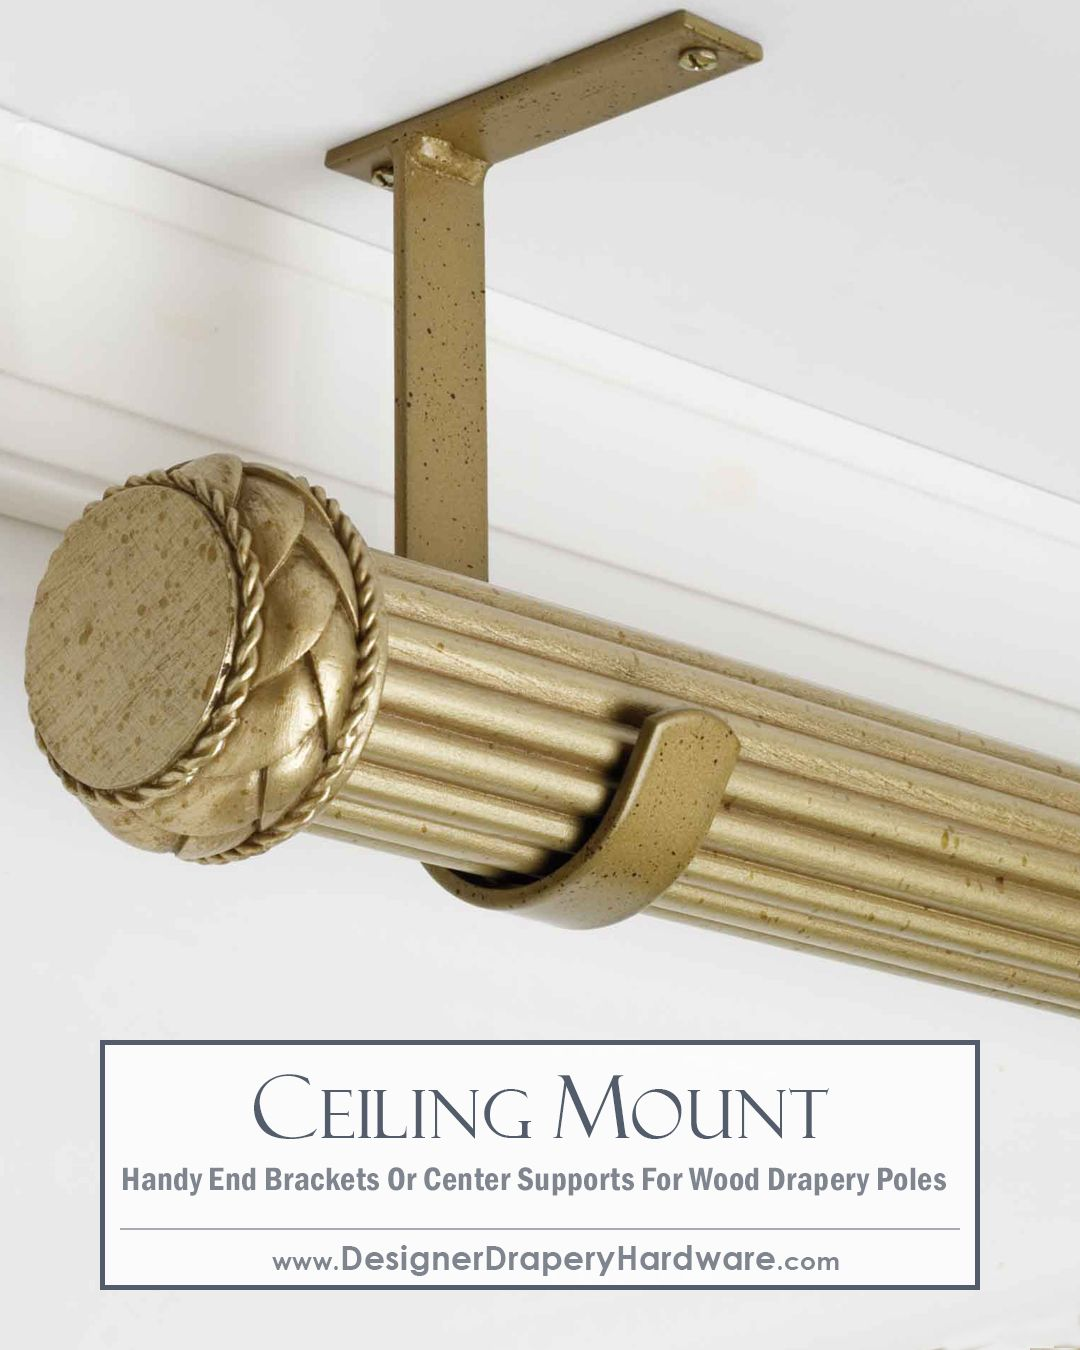 Simple And Fast Ceiling Mount Installations For Wood Drapery